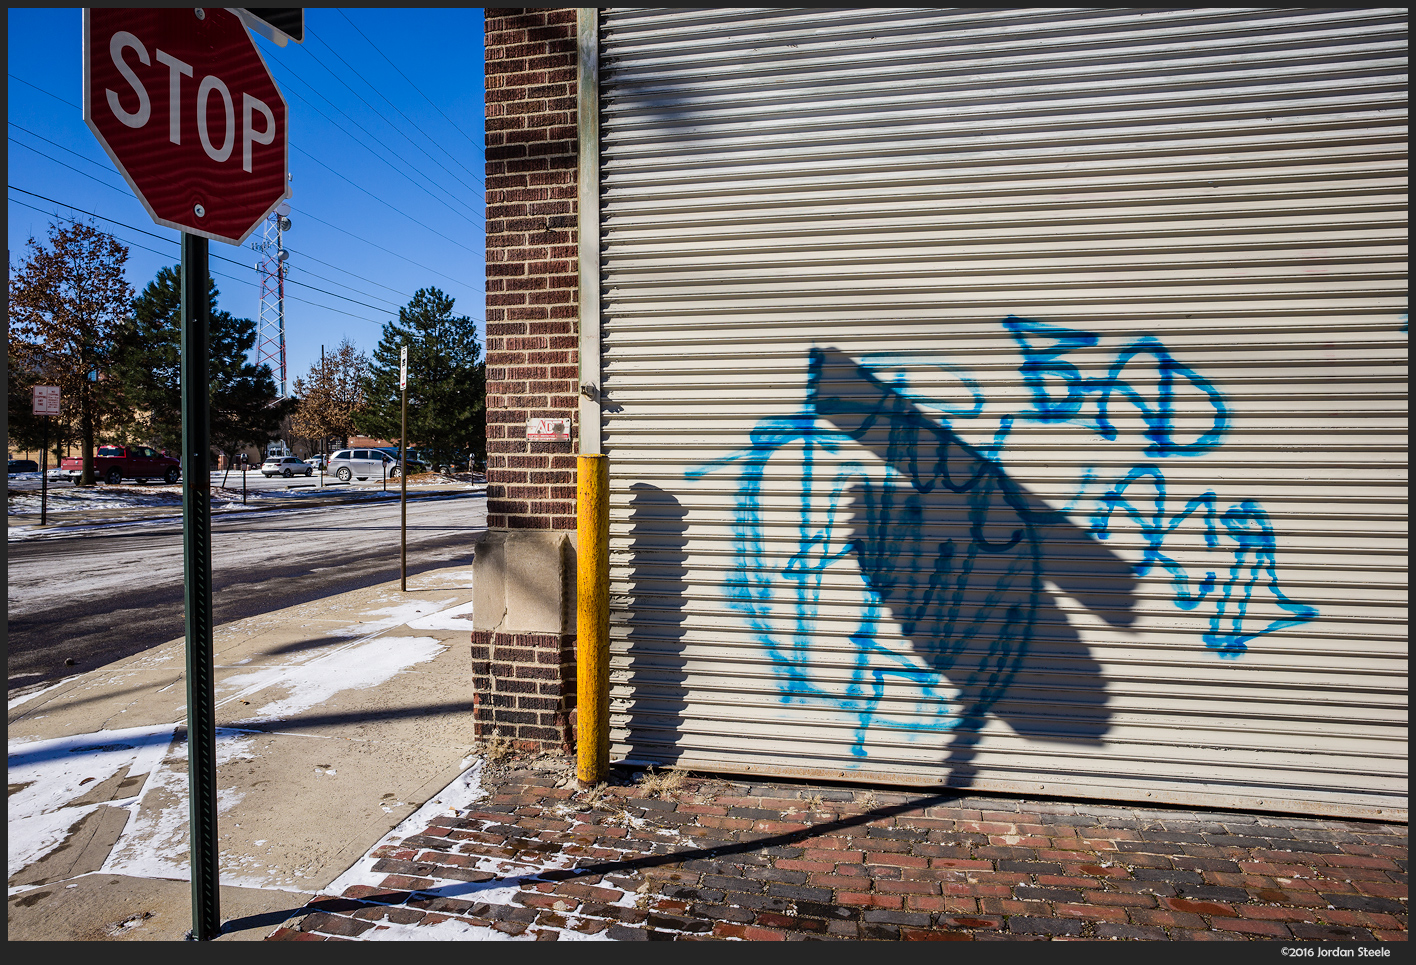 Stop Shadow - Sony A7 II with Zeiss Loxia 21mm f/2.8 Distagon @ f/8